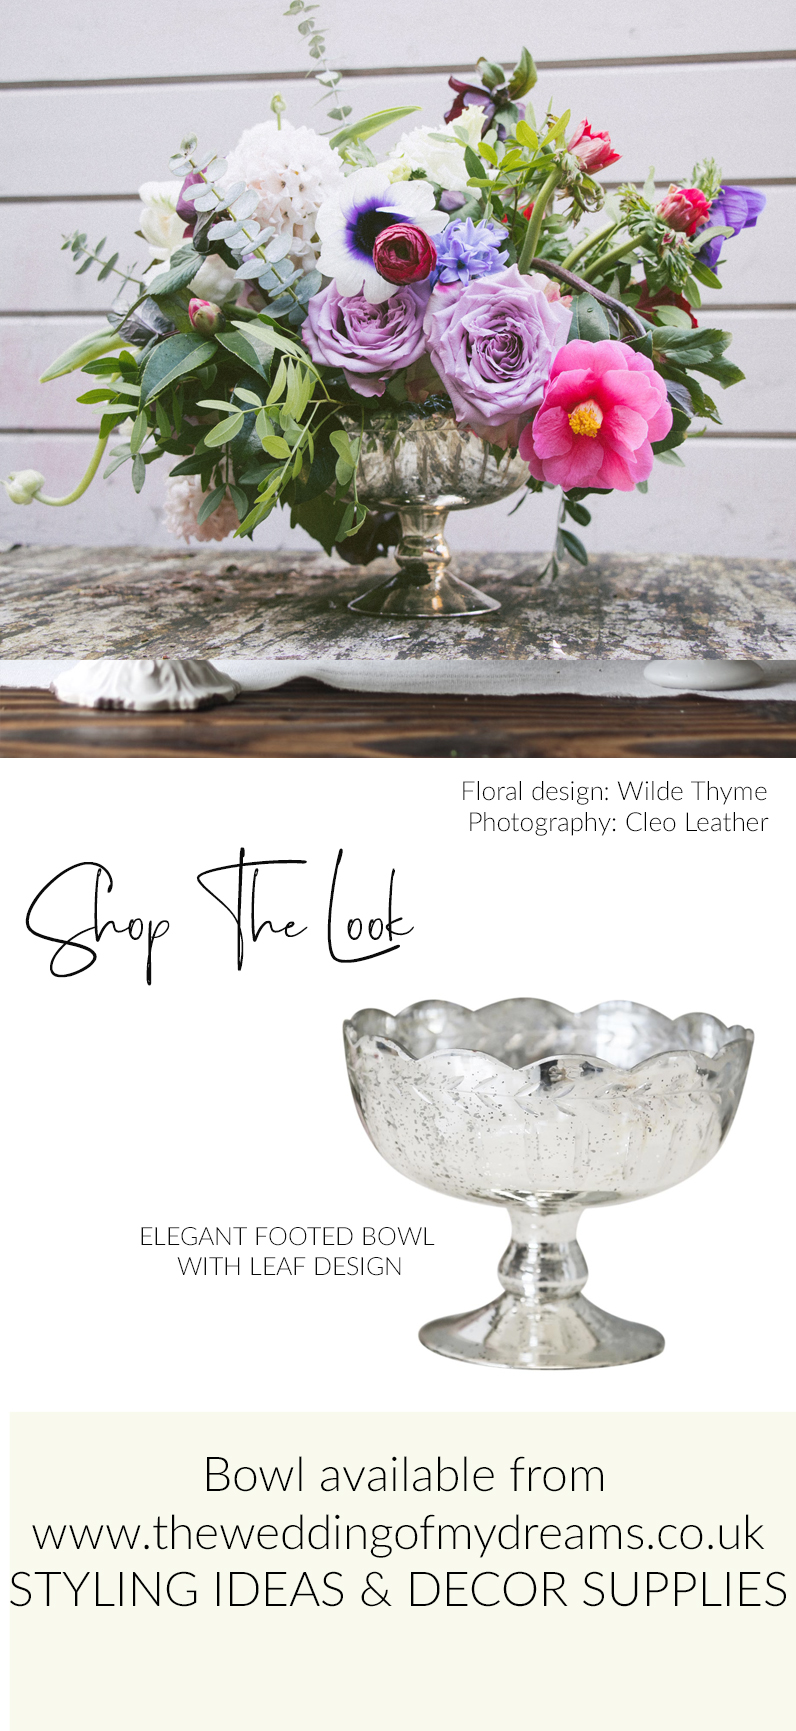 Footed bowl wedding centrepieces vases shop the look The Wedding of my Dreams